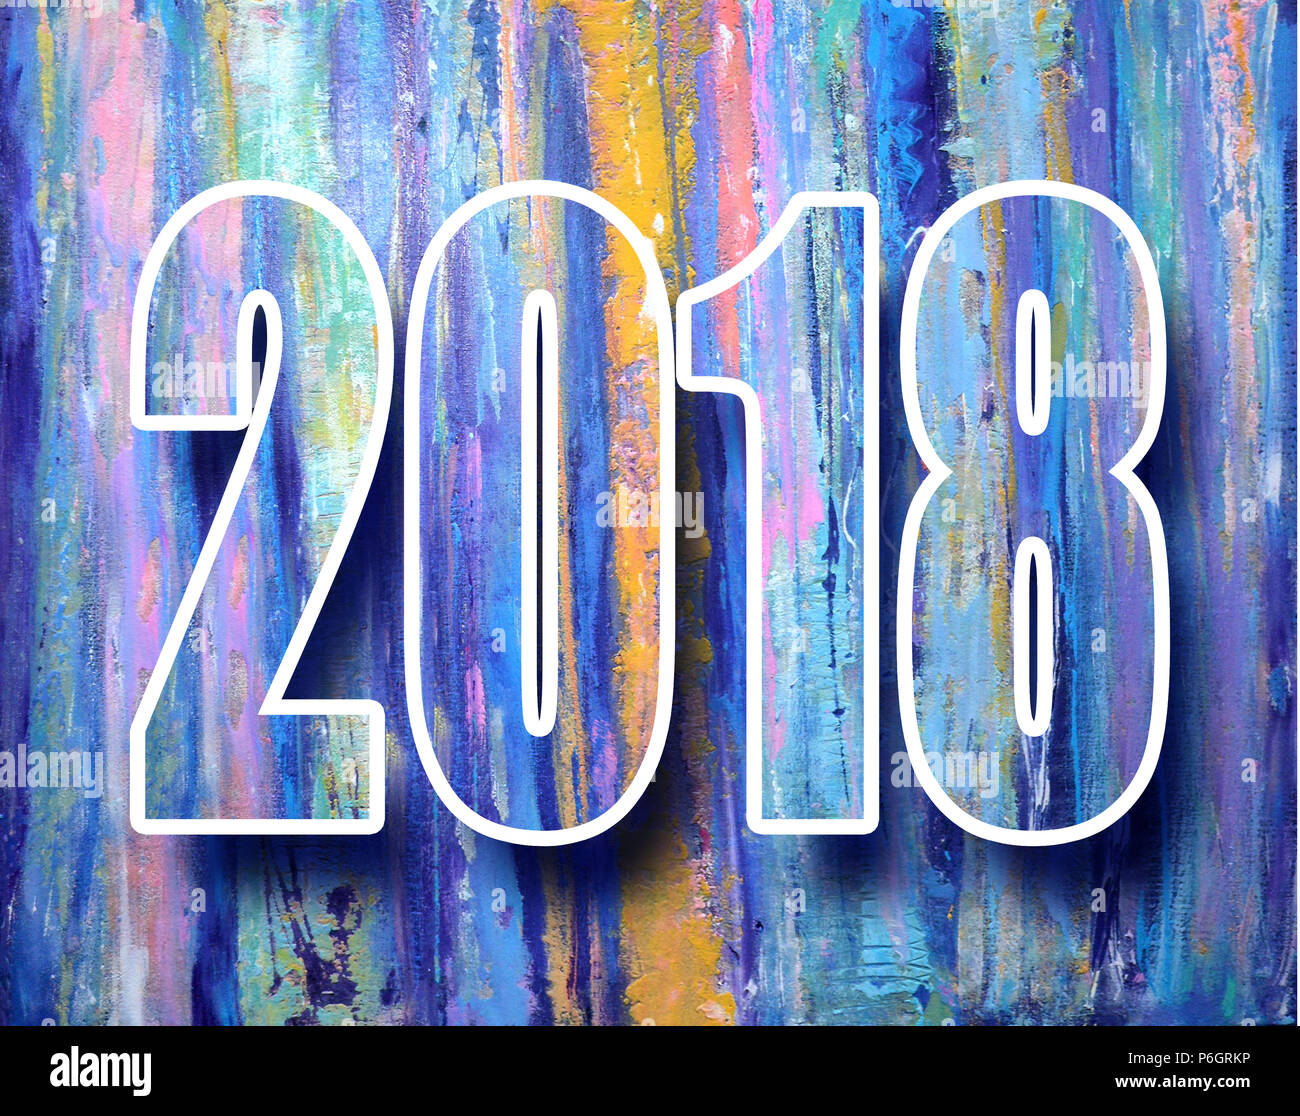 2018 new year banner happy new year 2018 decoration poster card vintage abstract colorful poster